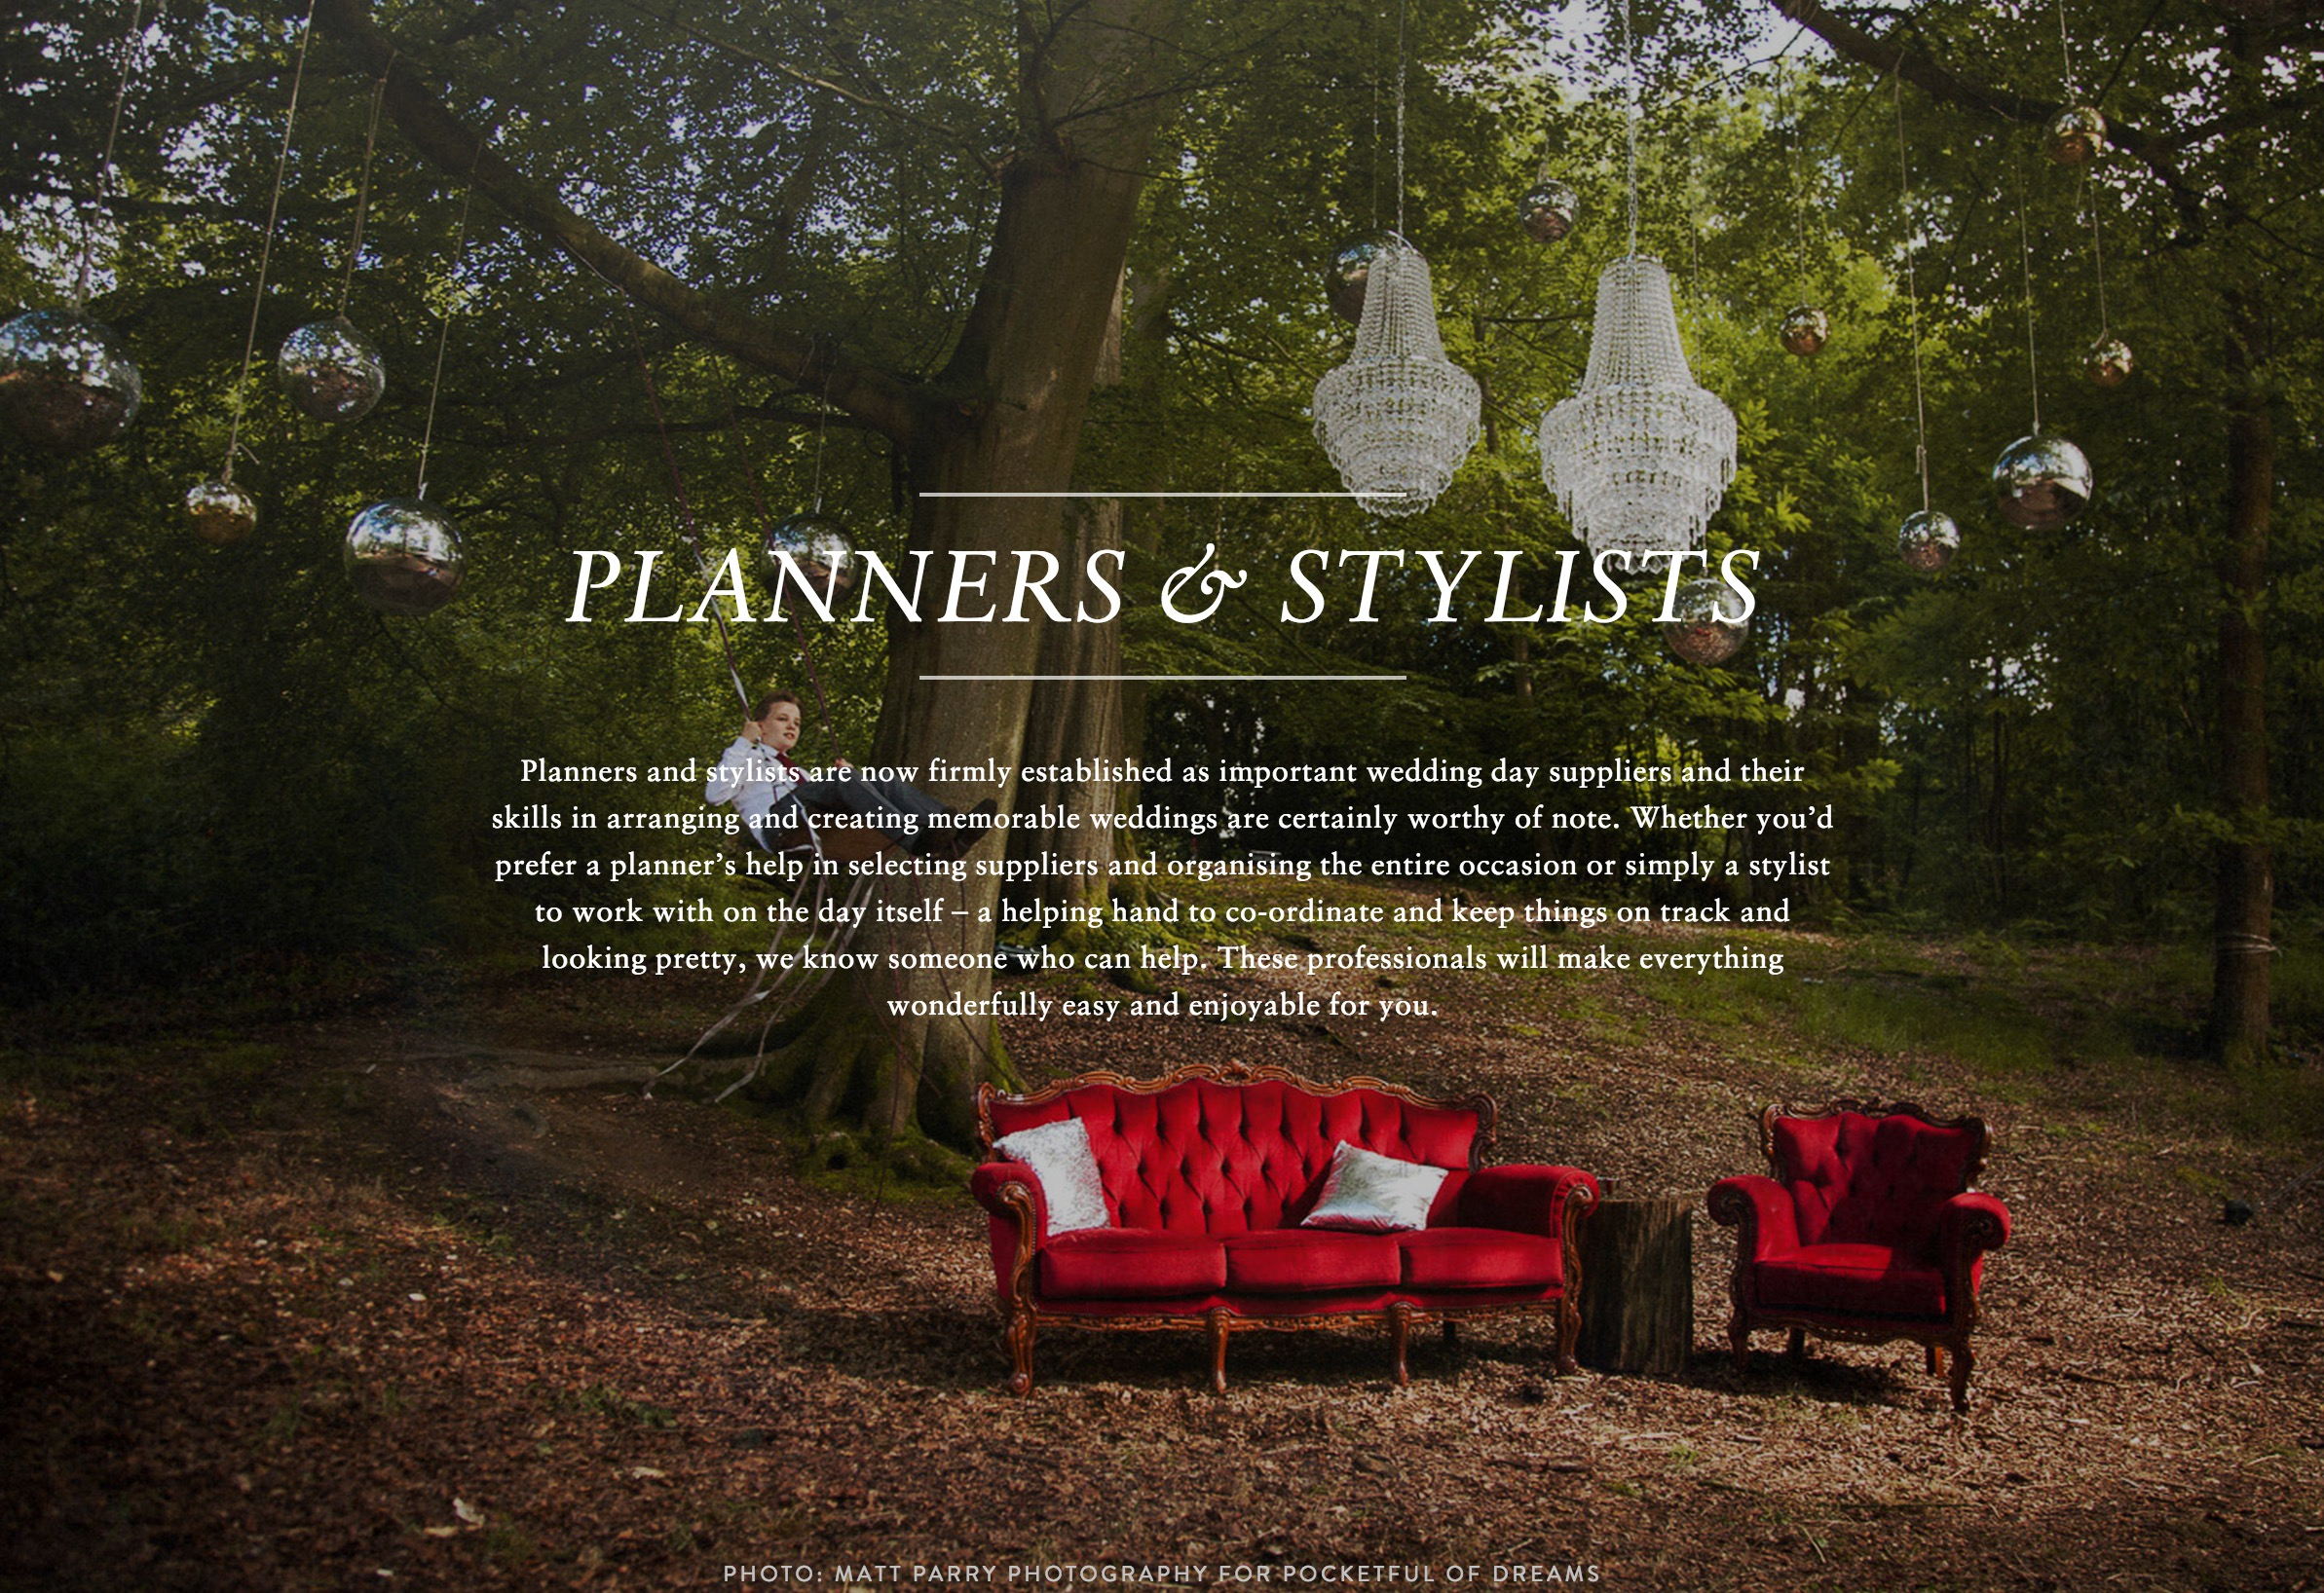 How To Choose Wedding Suppliers You'll Love – Expert Advice From Little Book For Brides Members